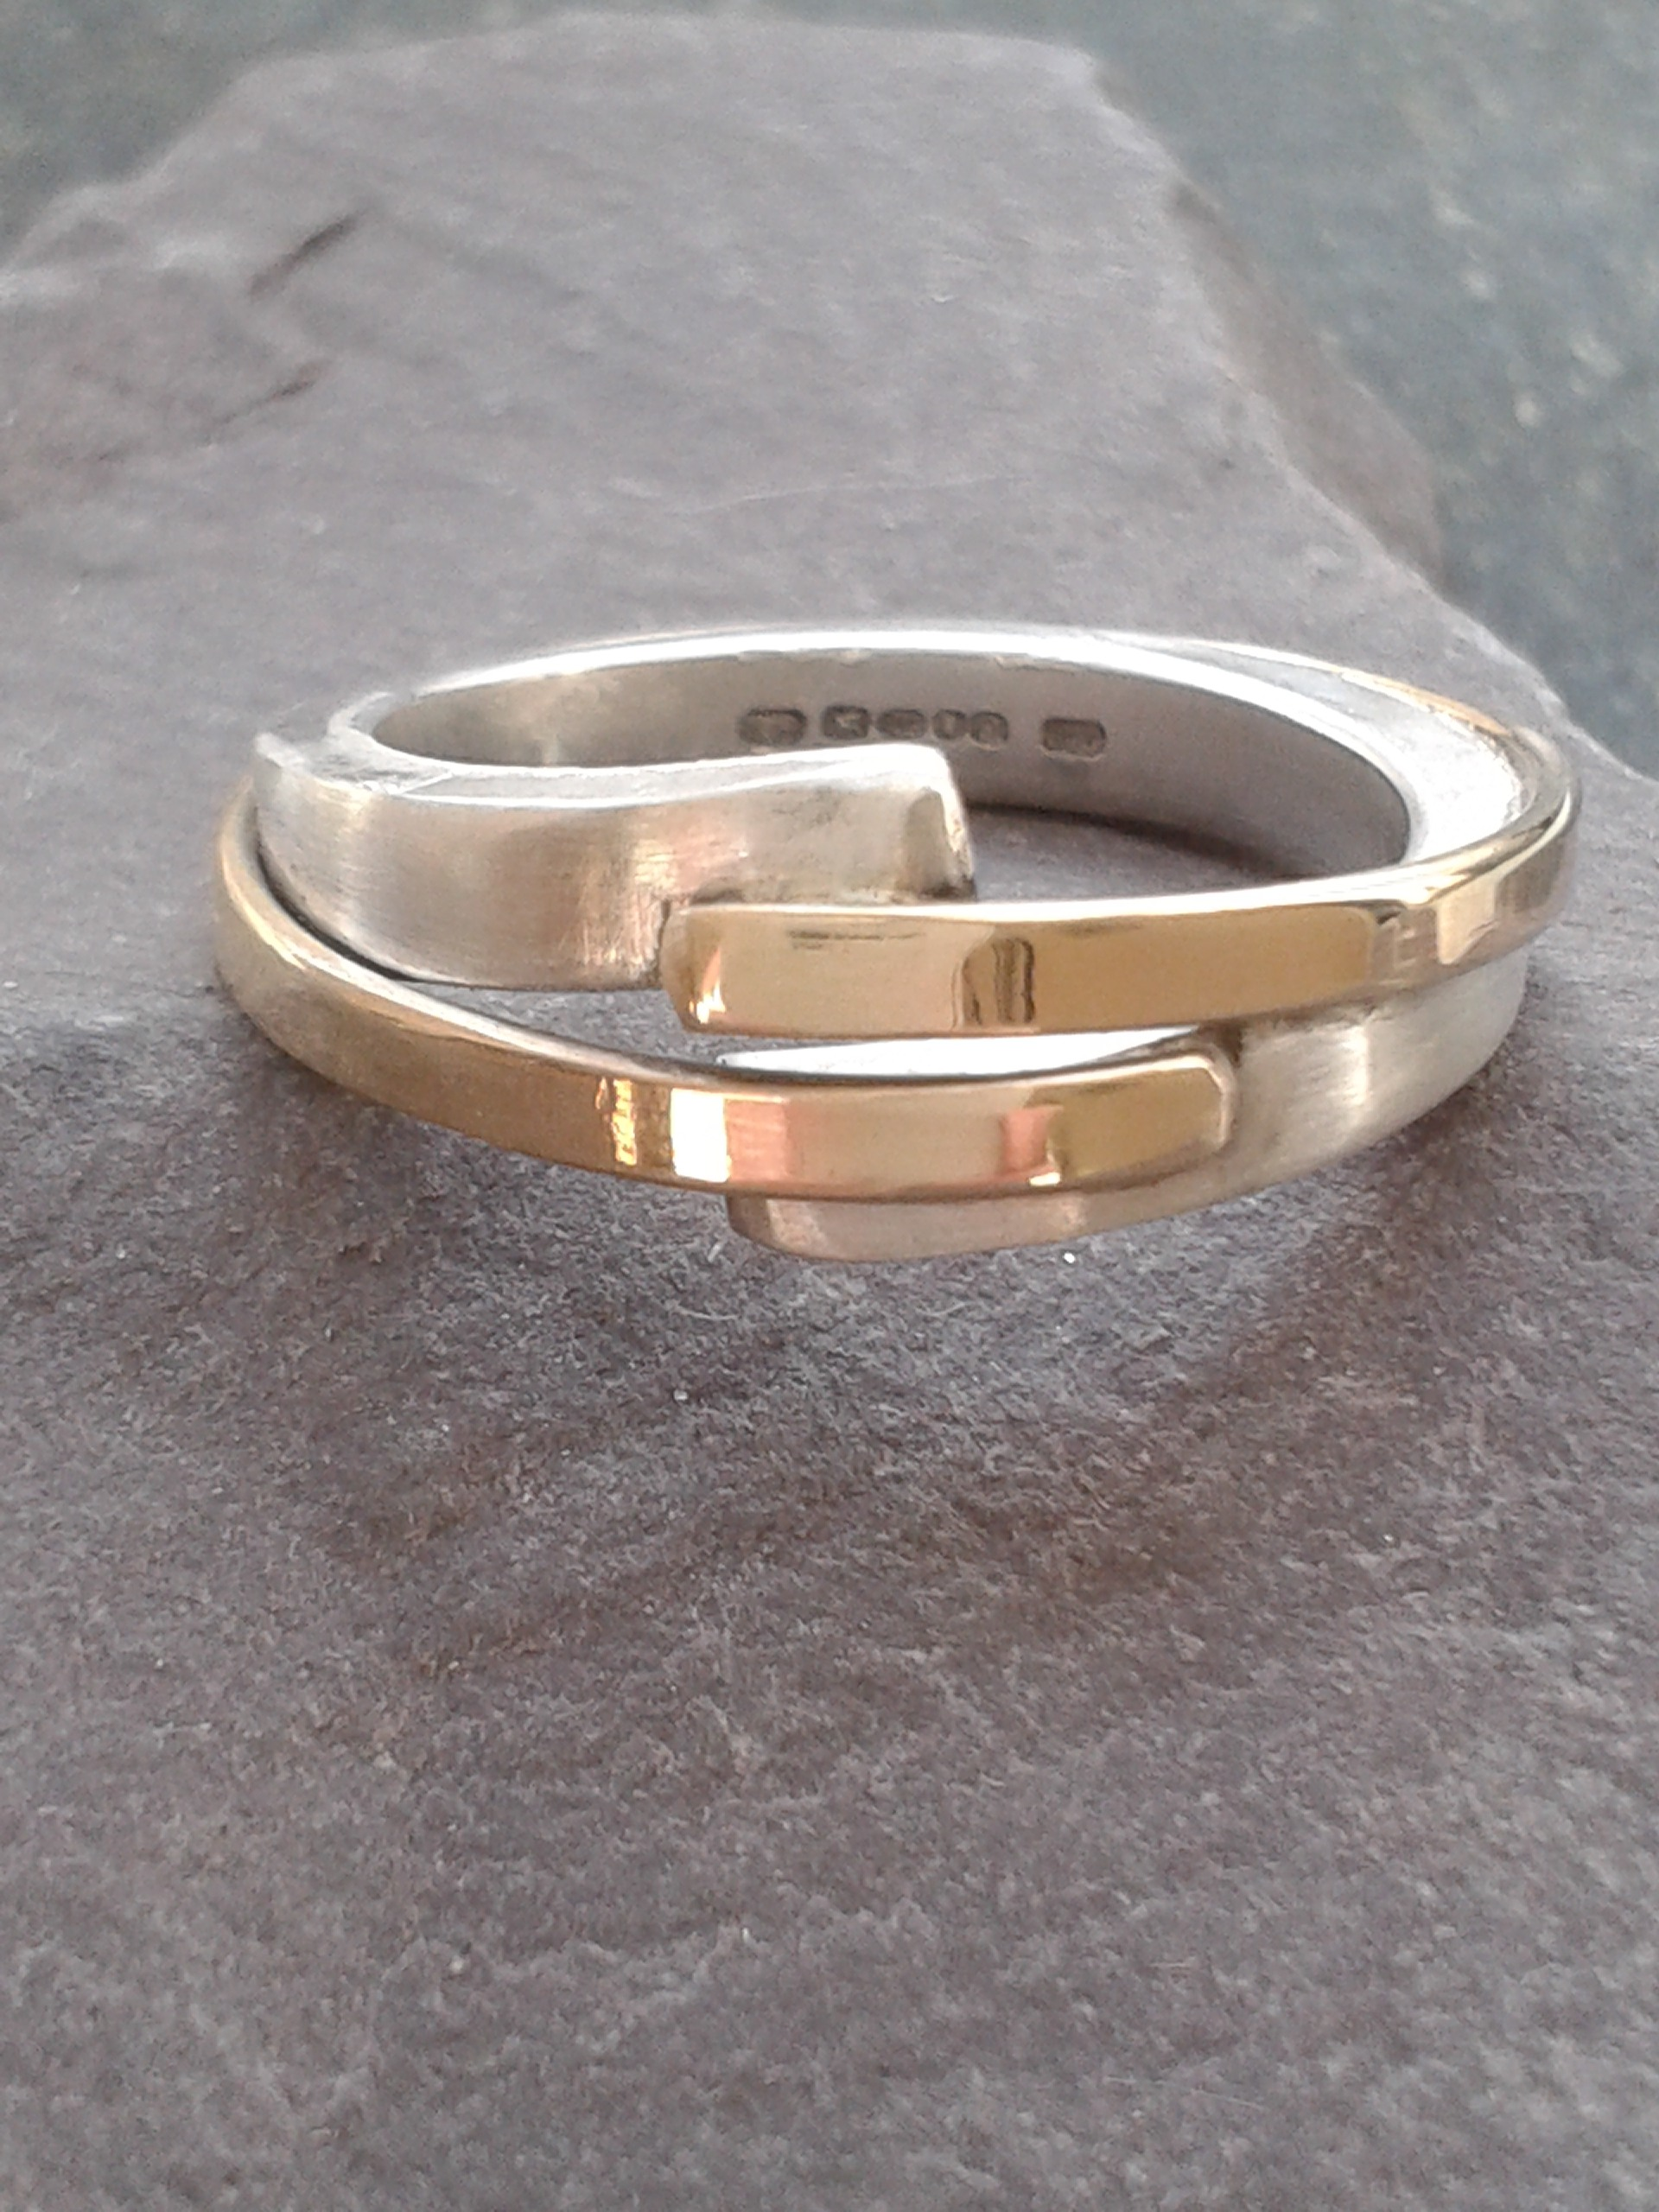 Silver and gold designer ring